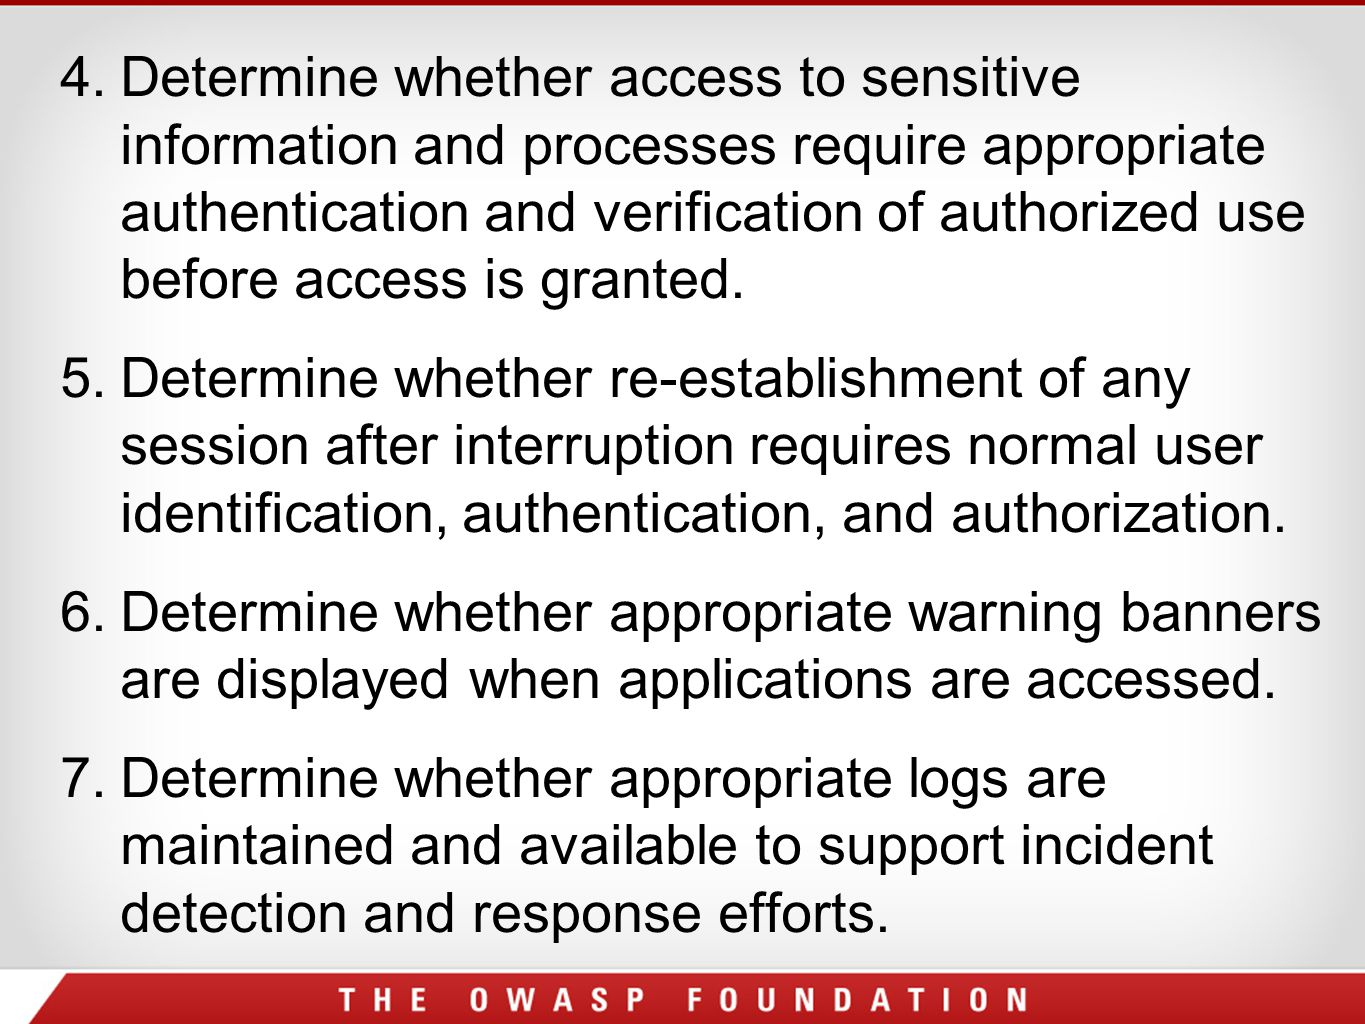 4.Determine whether access to sensitive information and processes require appropriate authentication and verification of authorized use before access